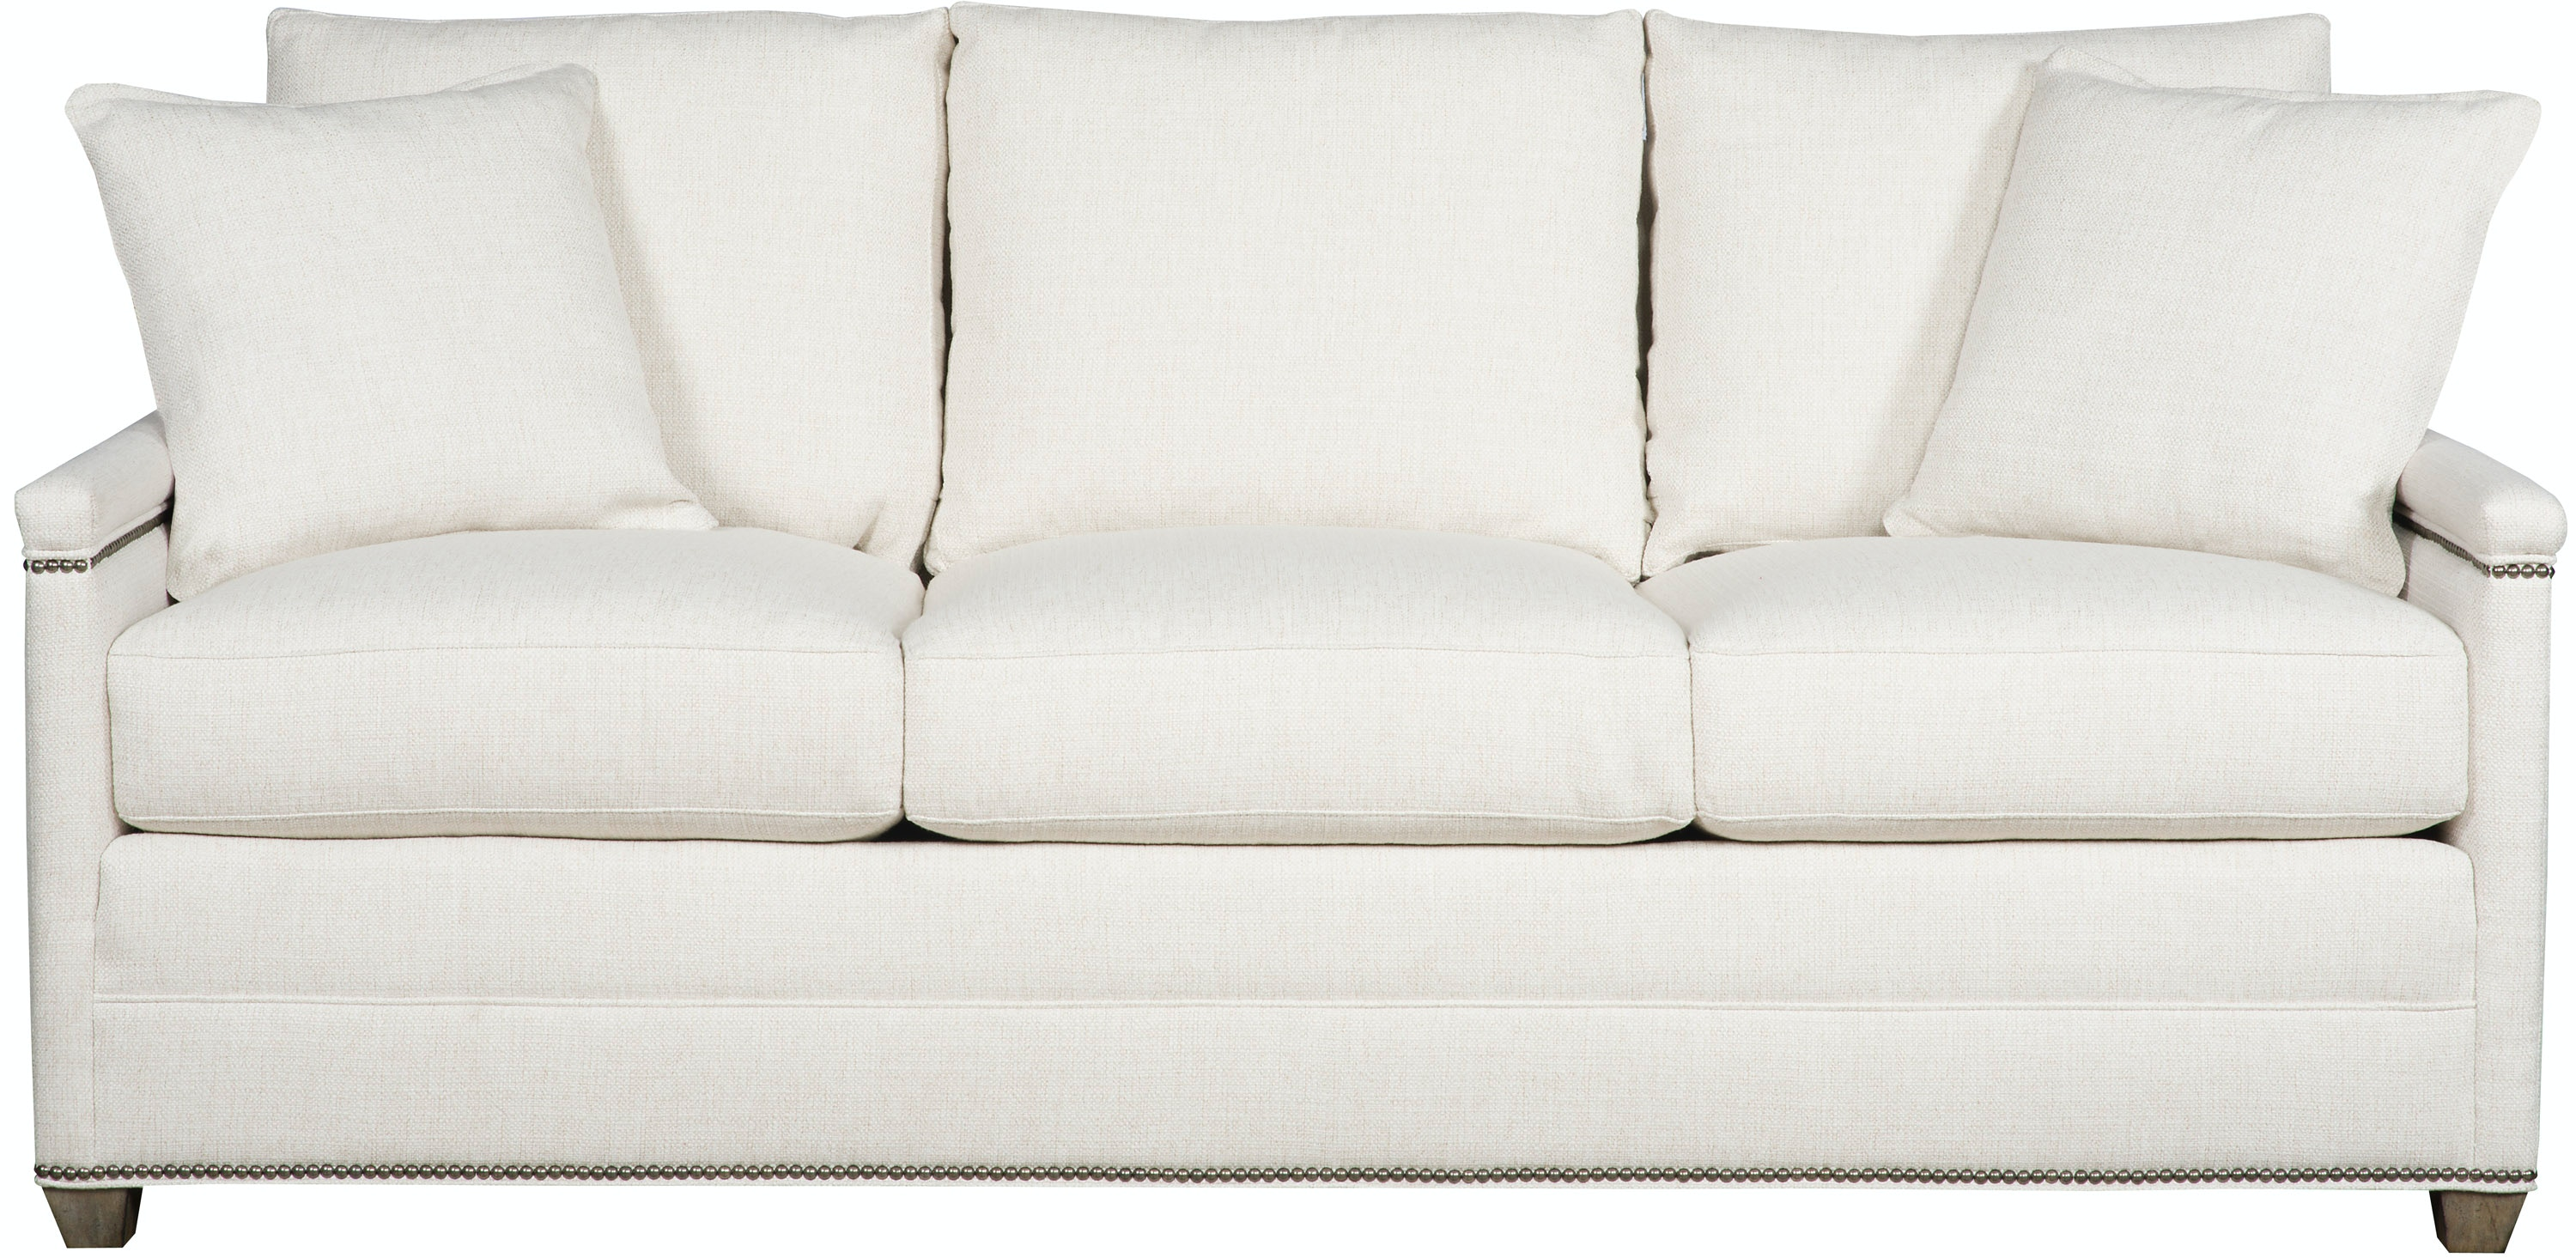 Vanguard Furniture Connelly Springs Sofa 656 S